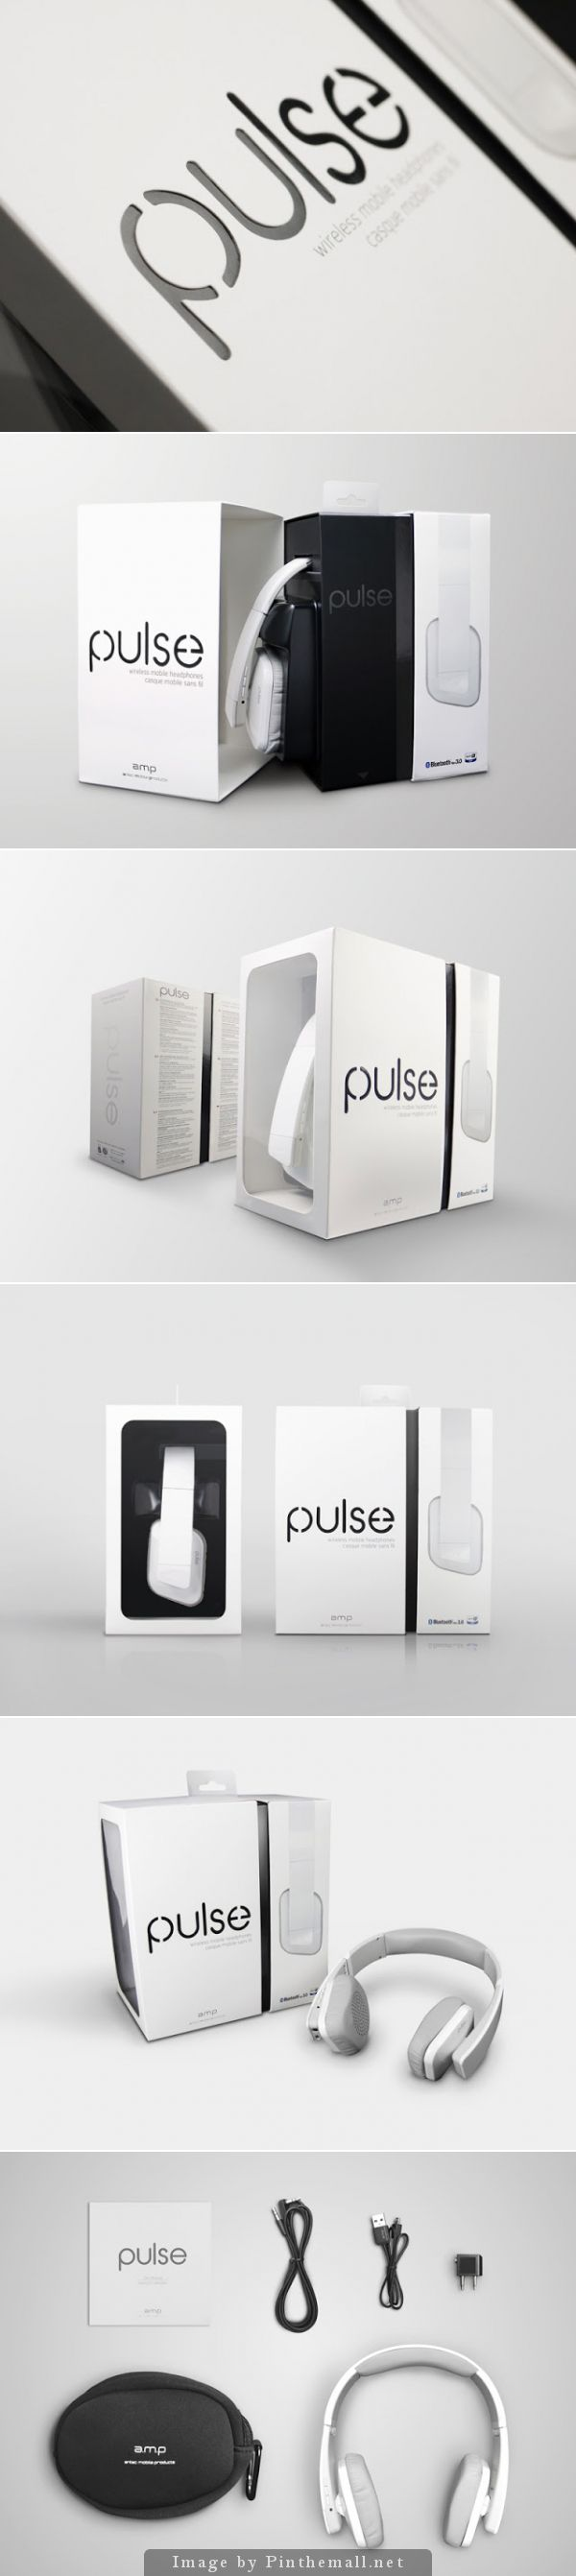 PULSE Headset, Creative Agency: CRE8 DESIGN, http://www.packagingoftheworld.com/2014/10/pulse-headset.html